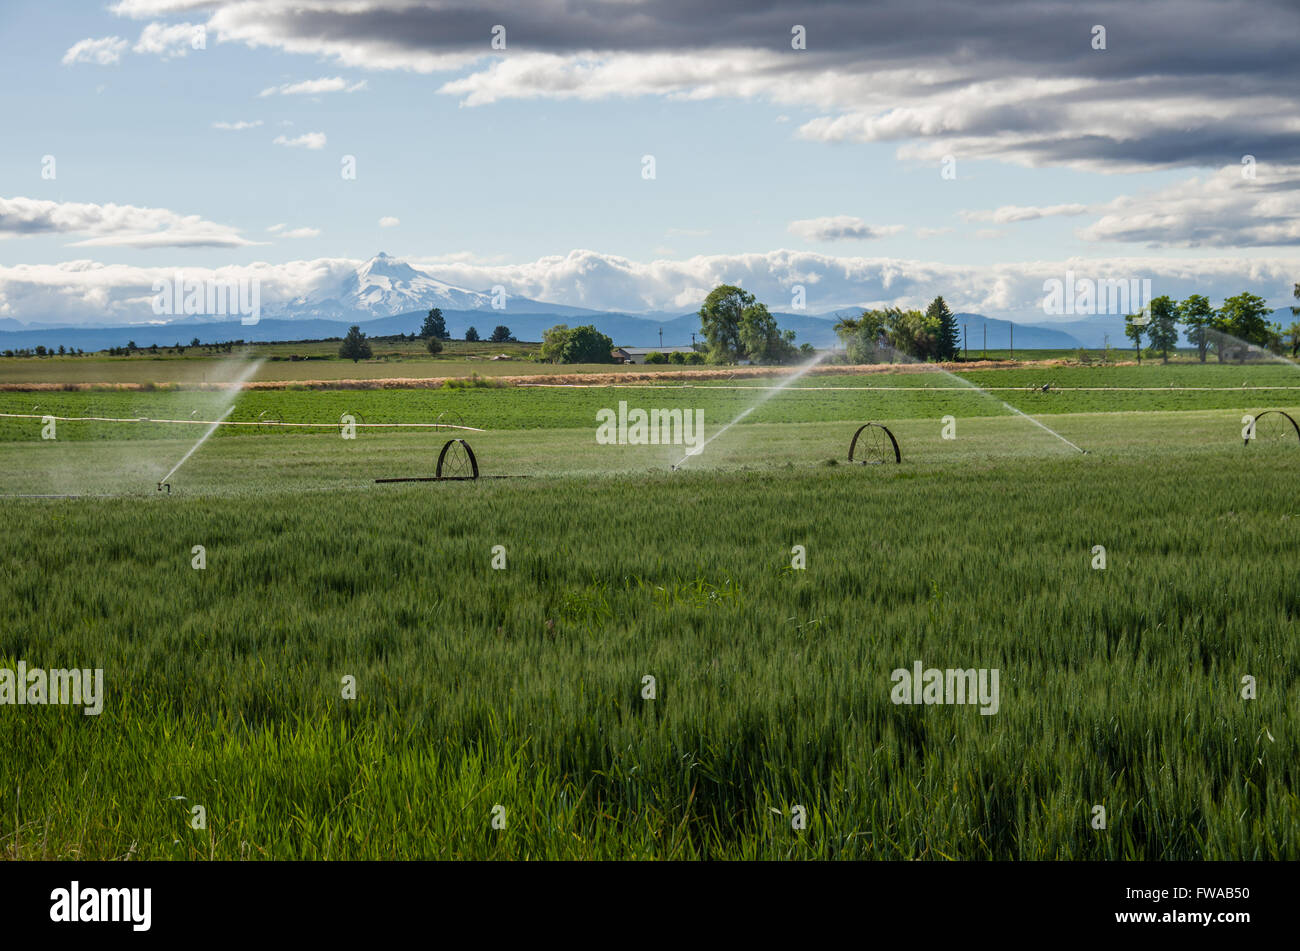 Wheat field being irrigated on a farm in eastern Oregon - Stock Image